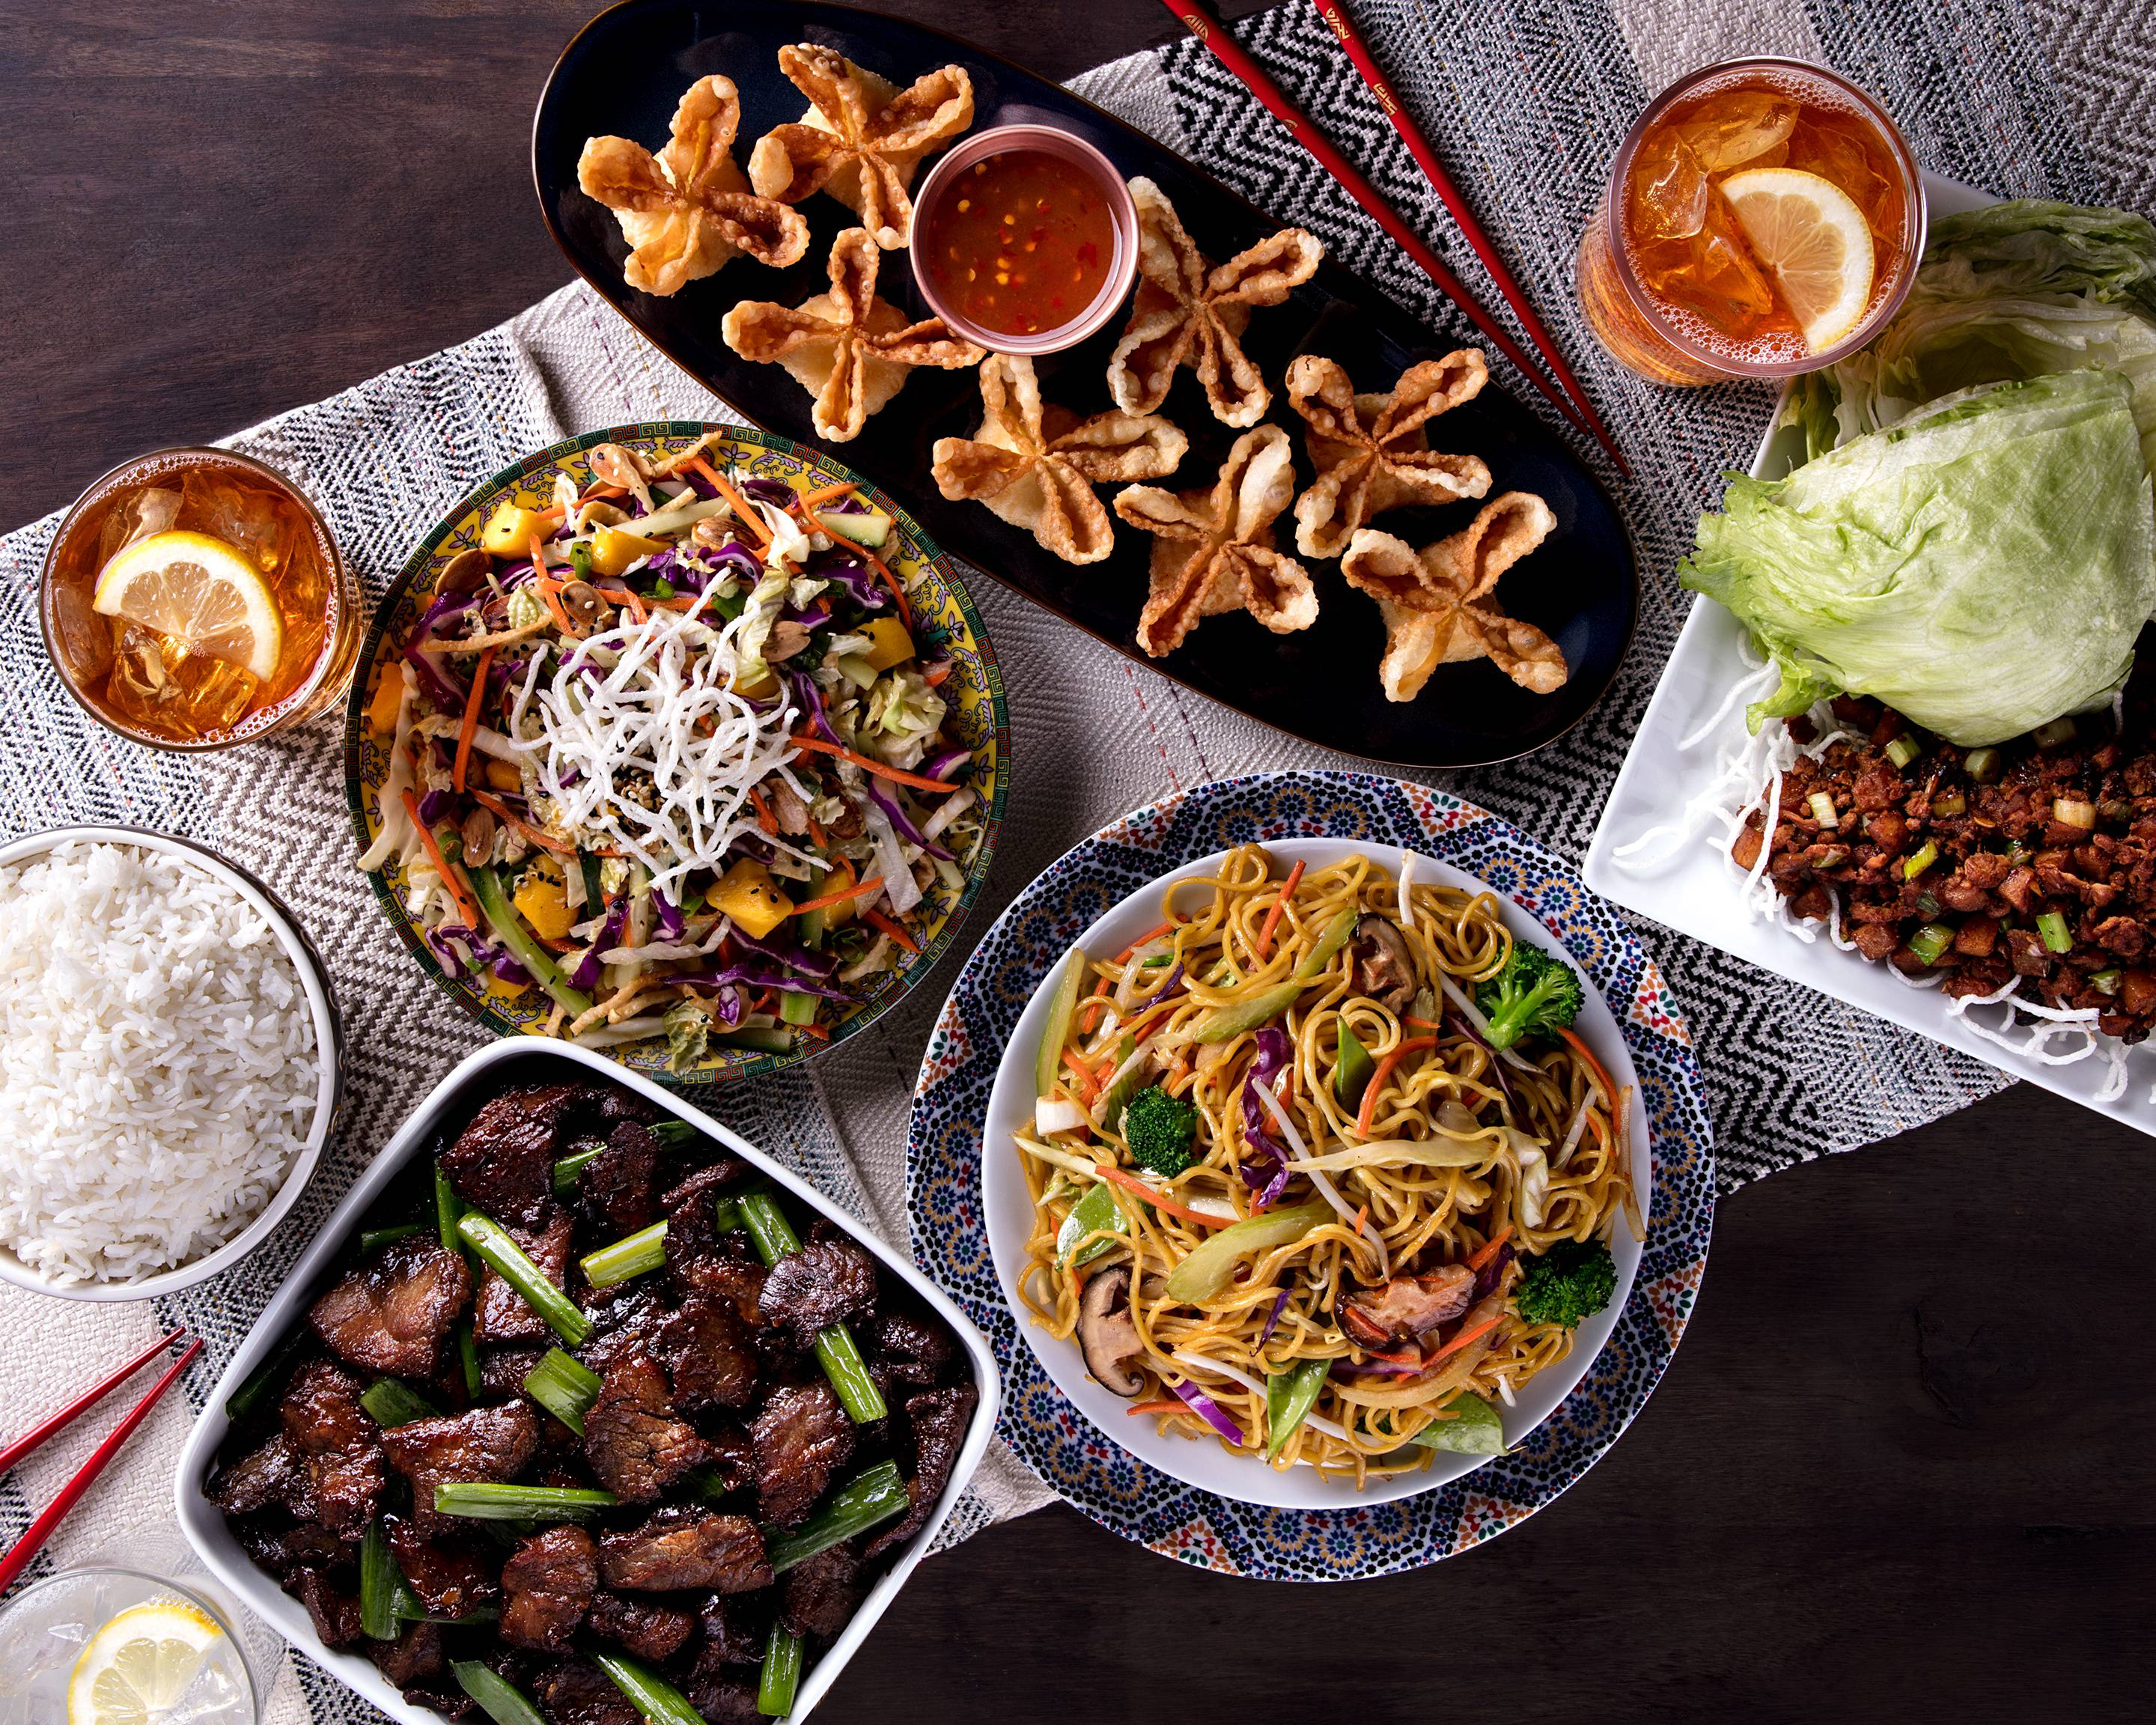 Order P F Chang S 436 N Orlando Ave Delivery Online Orlando Menu Prices Uber Eats